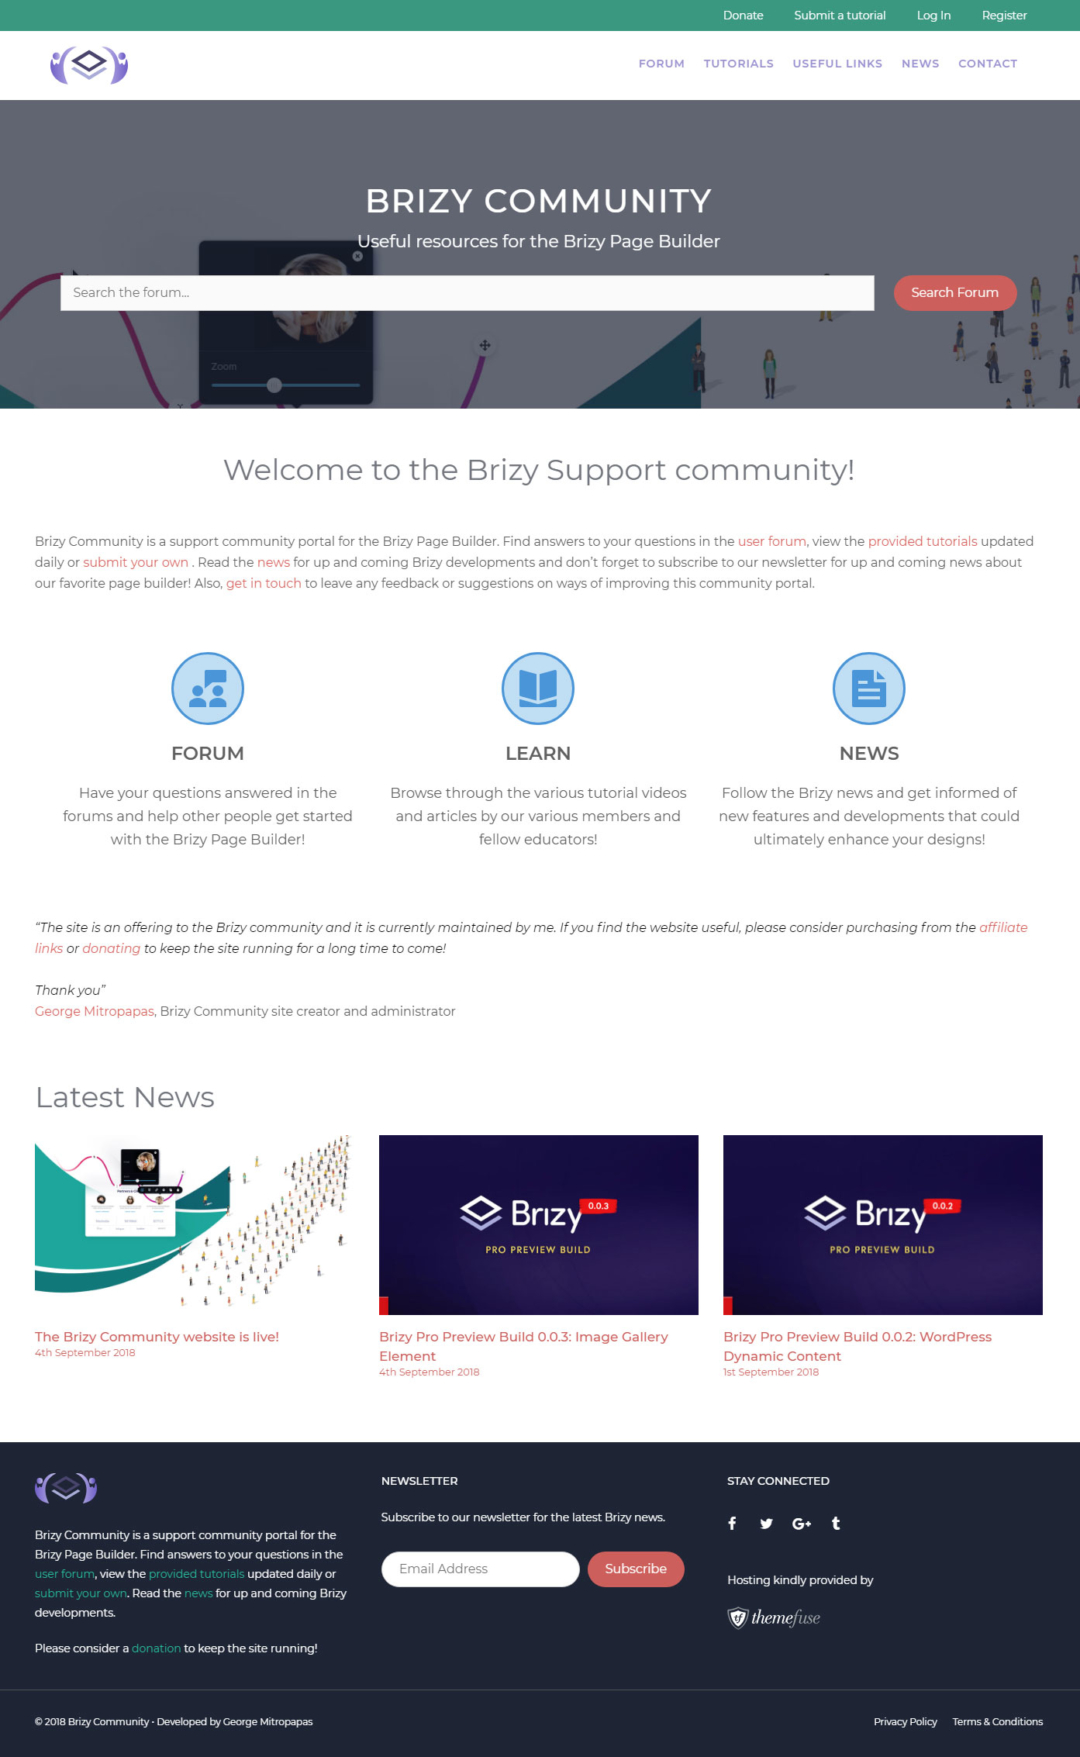 Brizy Community homepage